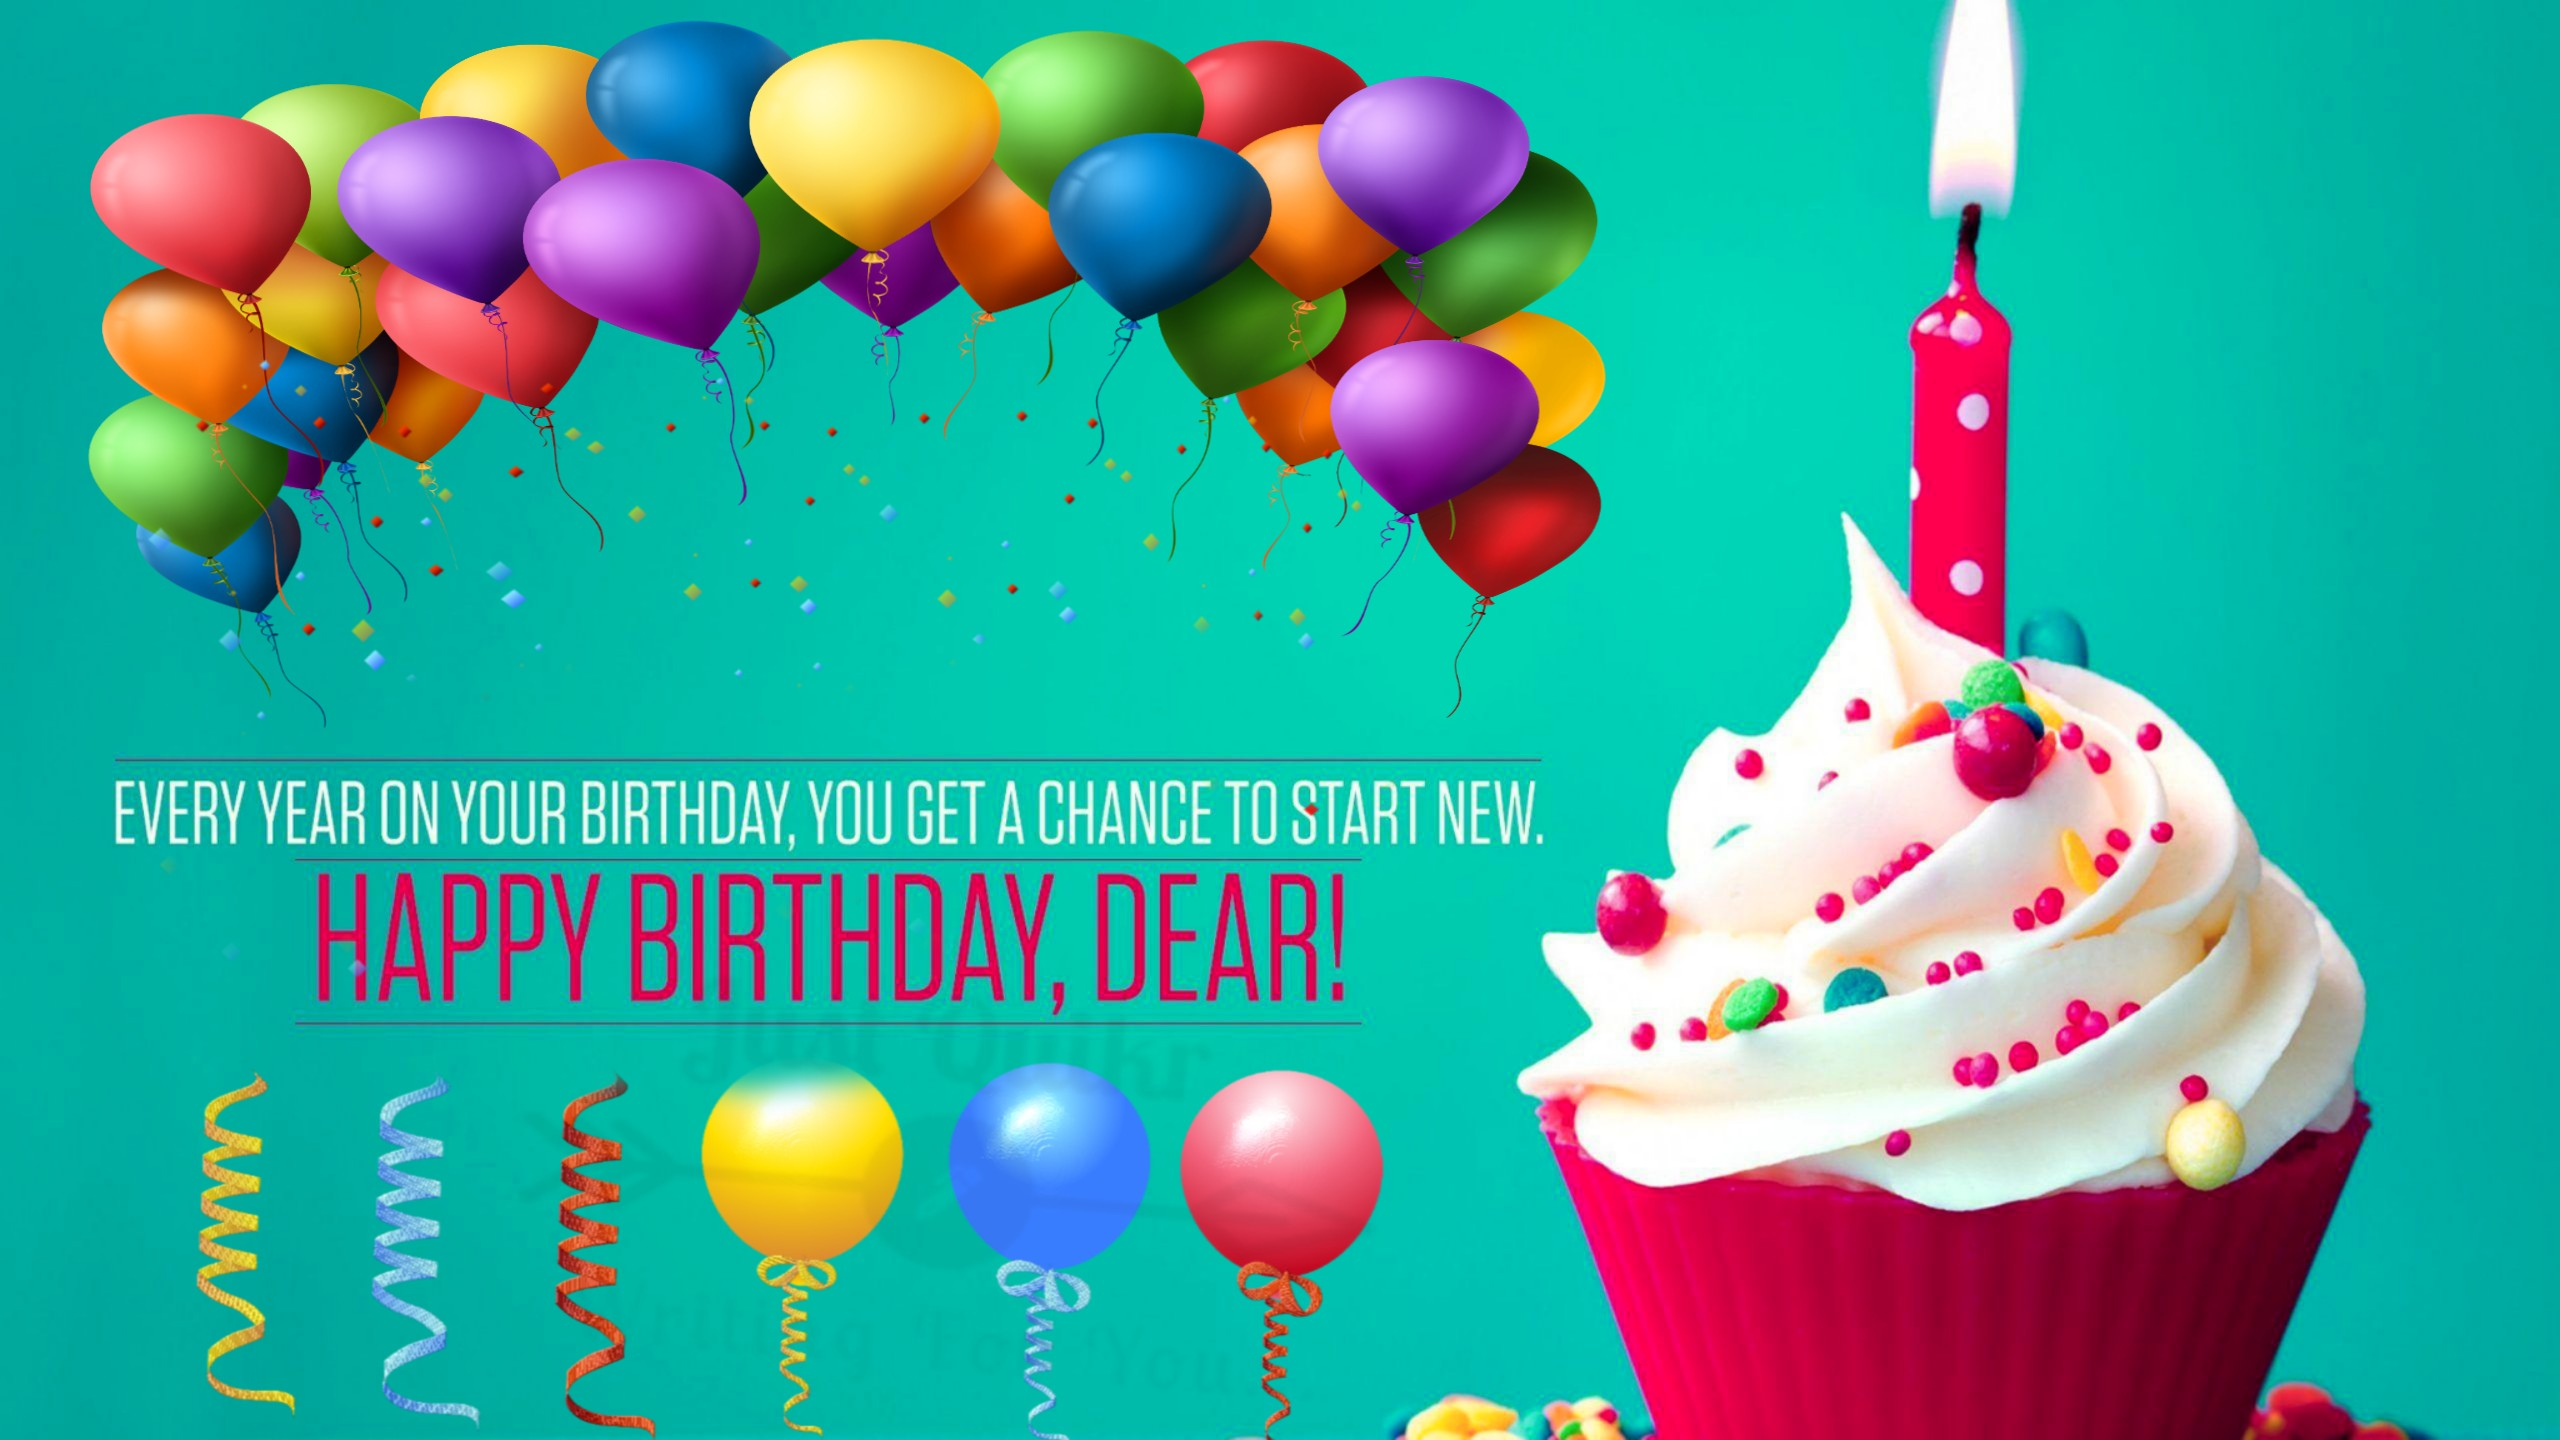 Happy Birthday Cake HD Pics Images with Wishes Quotes for Chef